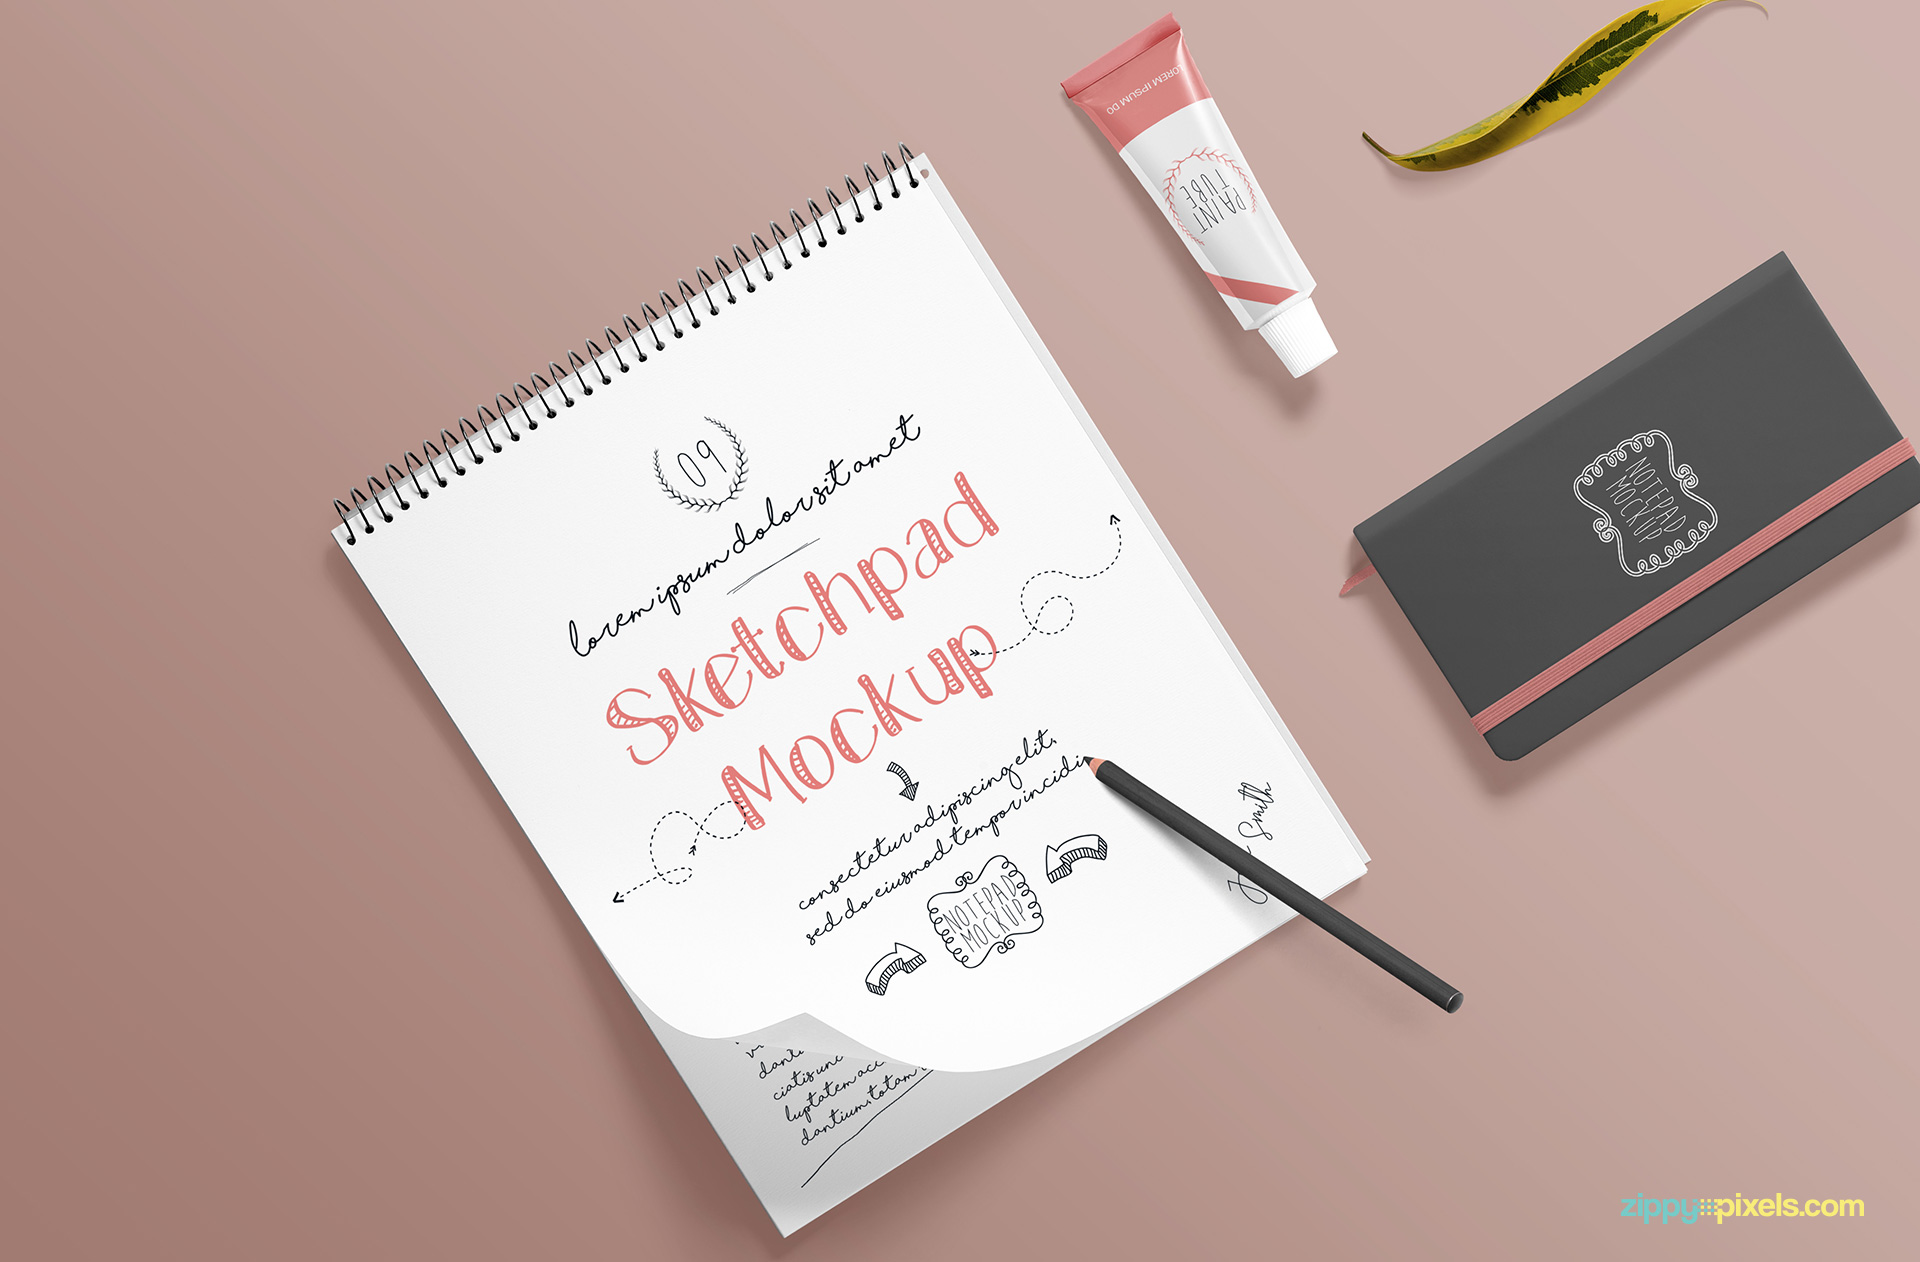 Fully customizable and free sketchbook mockup PSD scene.